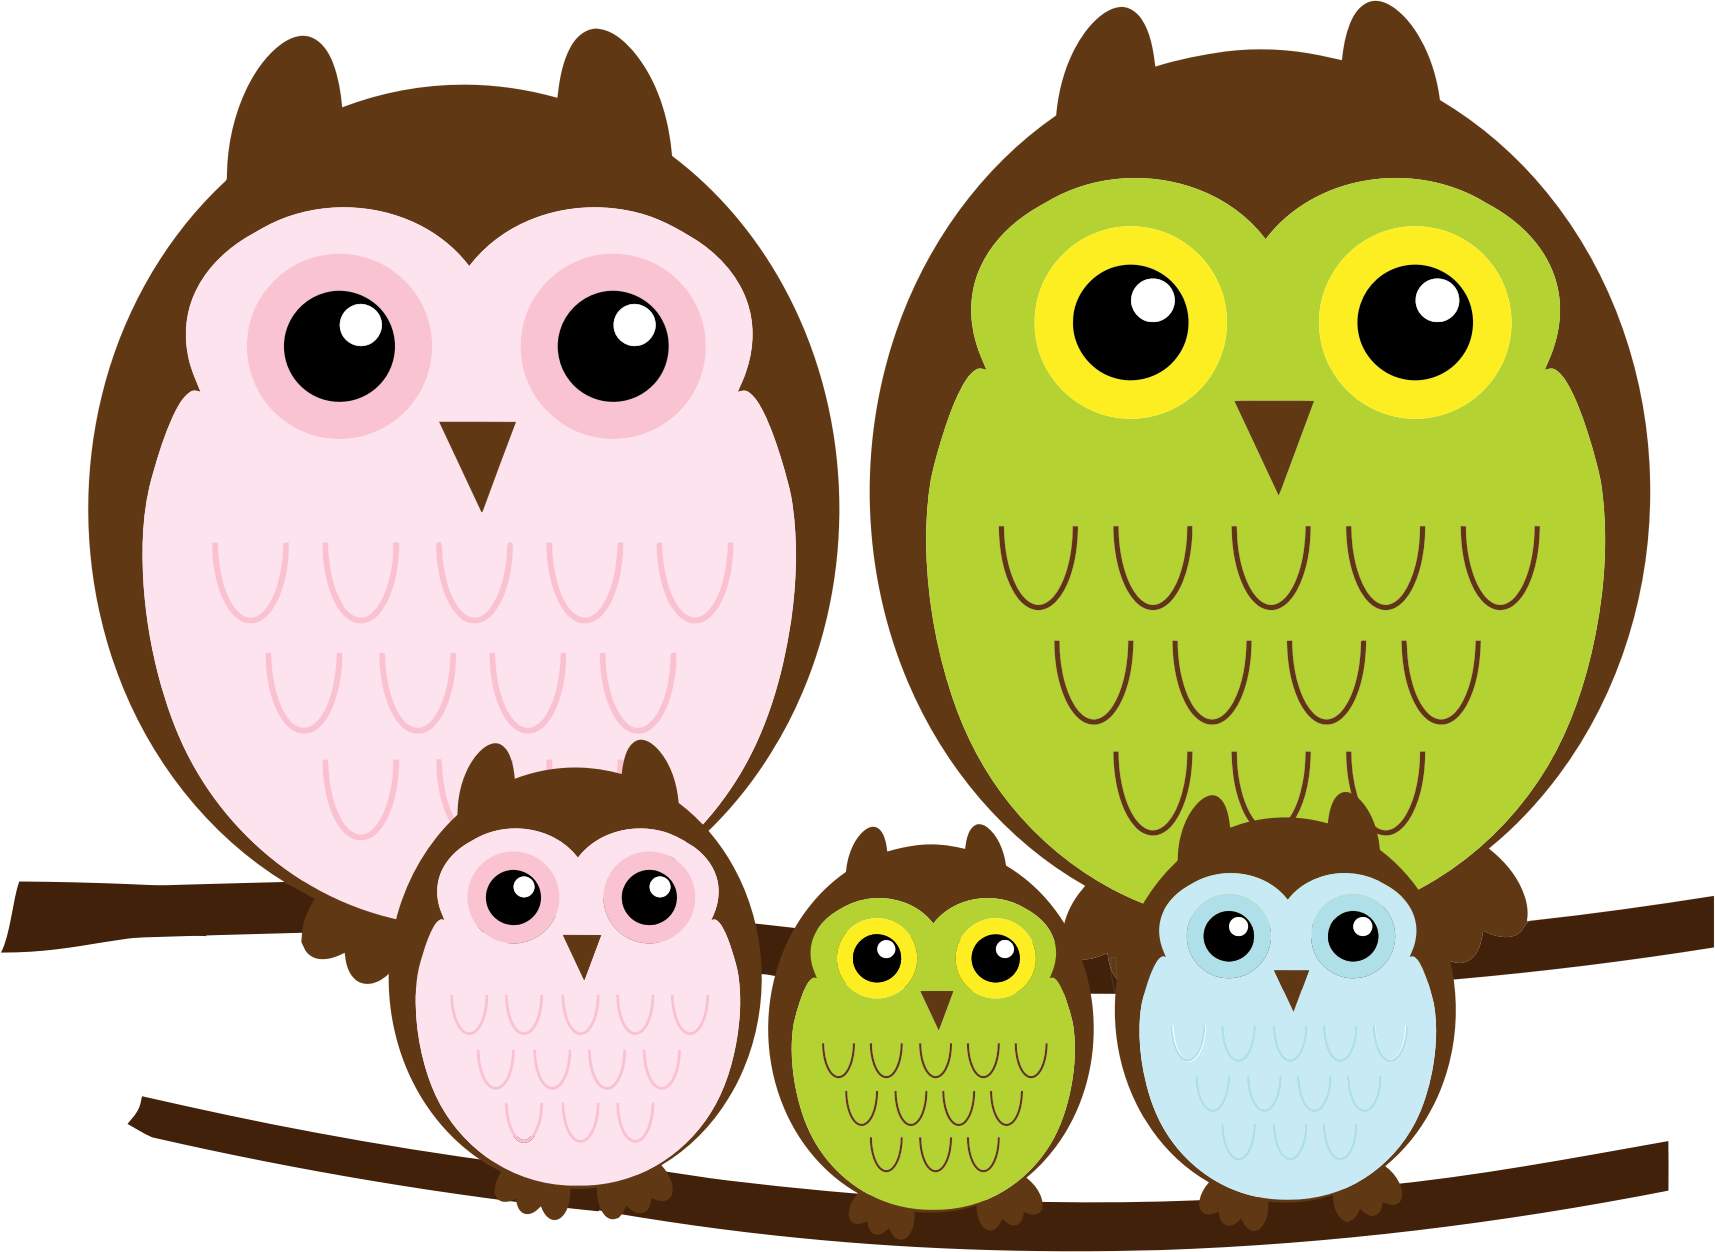 Owl family by ale92sc